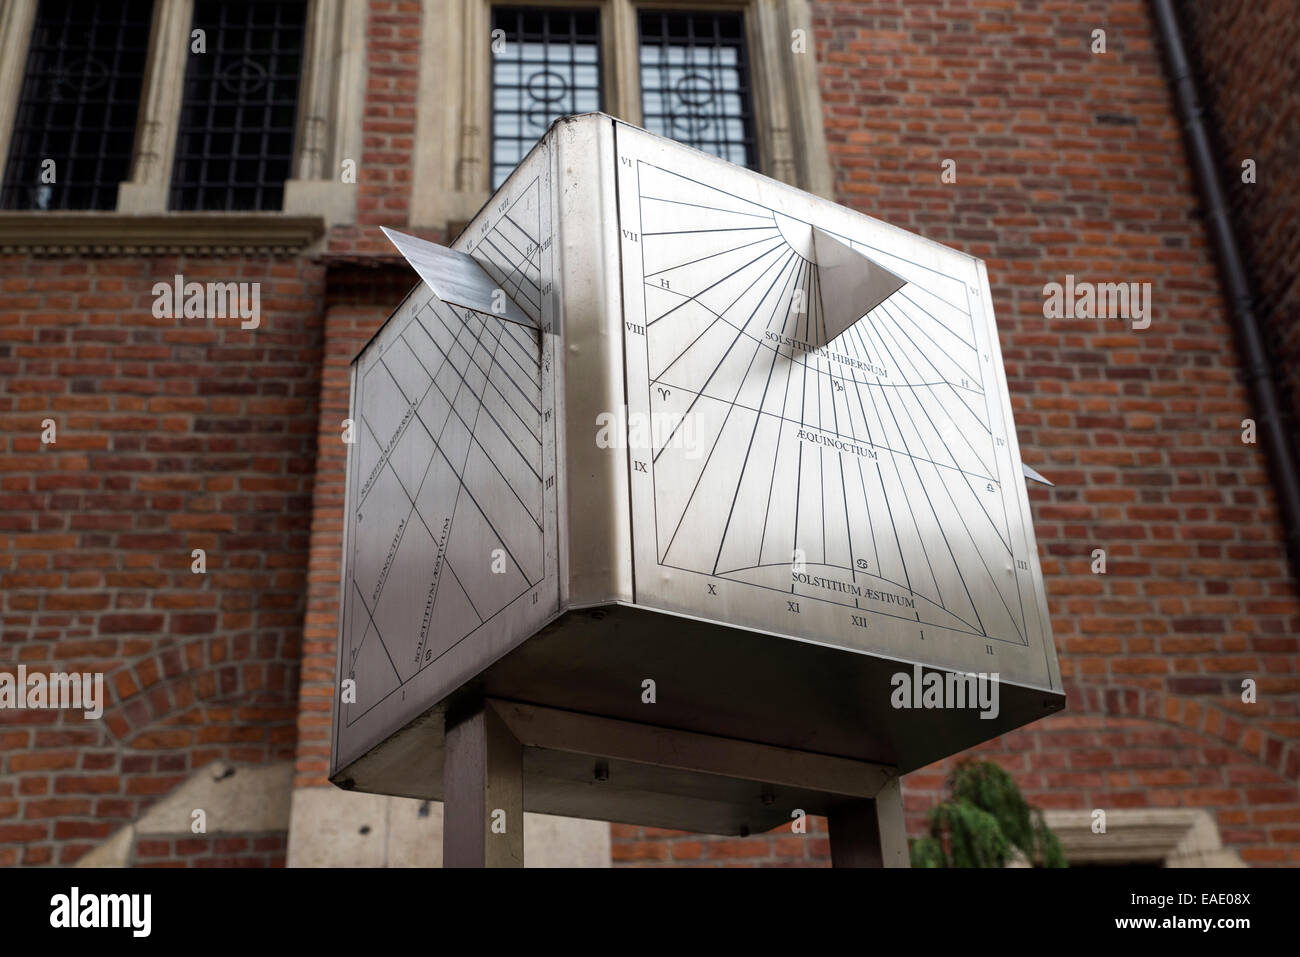 KRAKOW, POLAND - OCTOBER 26, 2014: A large cube in front of the facade of the university. A sophisticated sundial - Stock Image